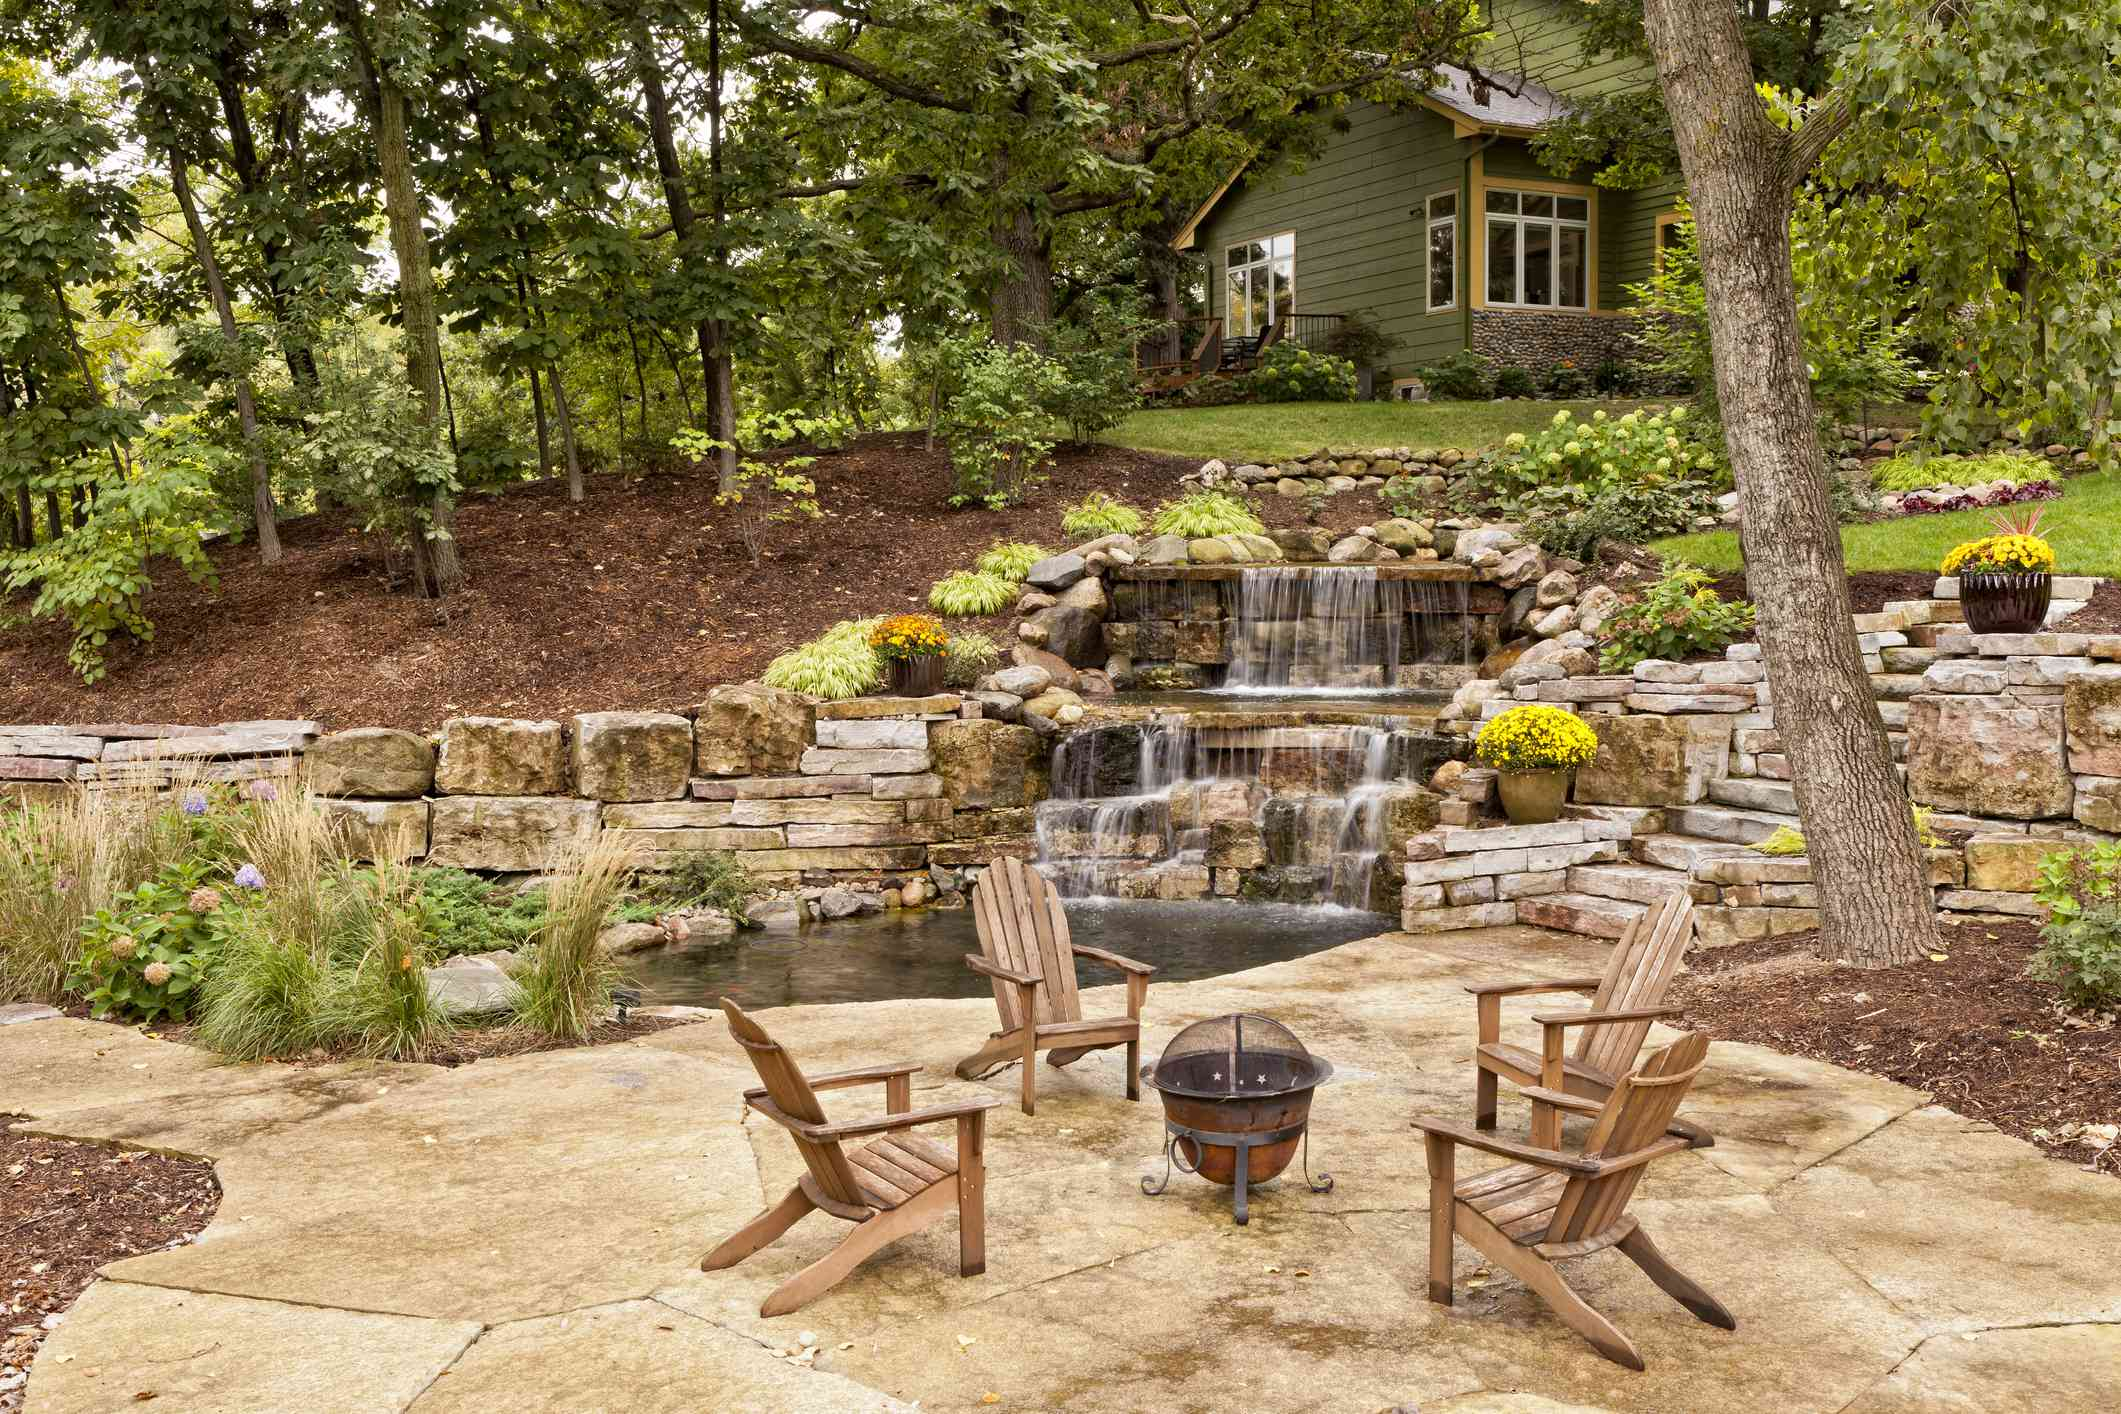 Beautiful landscaping with waterfall, koi pond, and stone patio with wooded surroundings